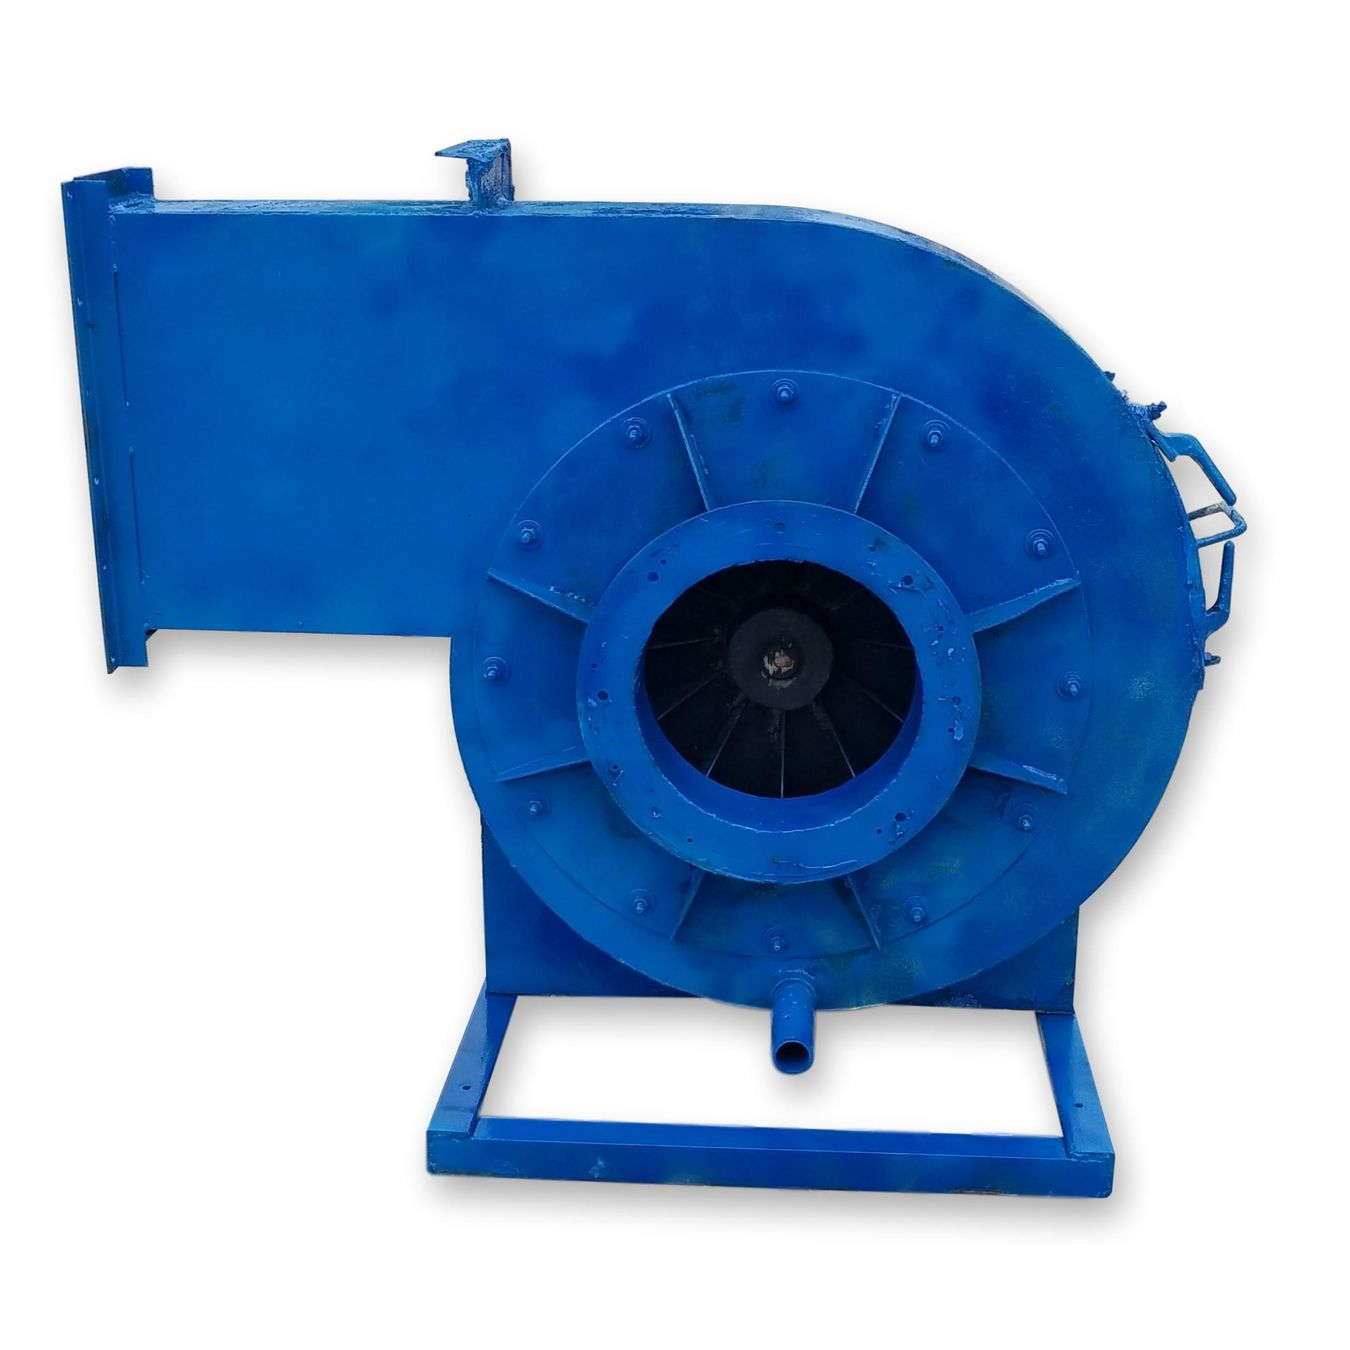 Pressure Blowers And Fans : Cfm at quot sp chicago pressure blower fans blowers